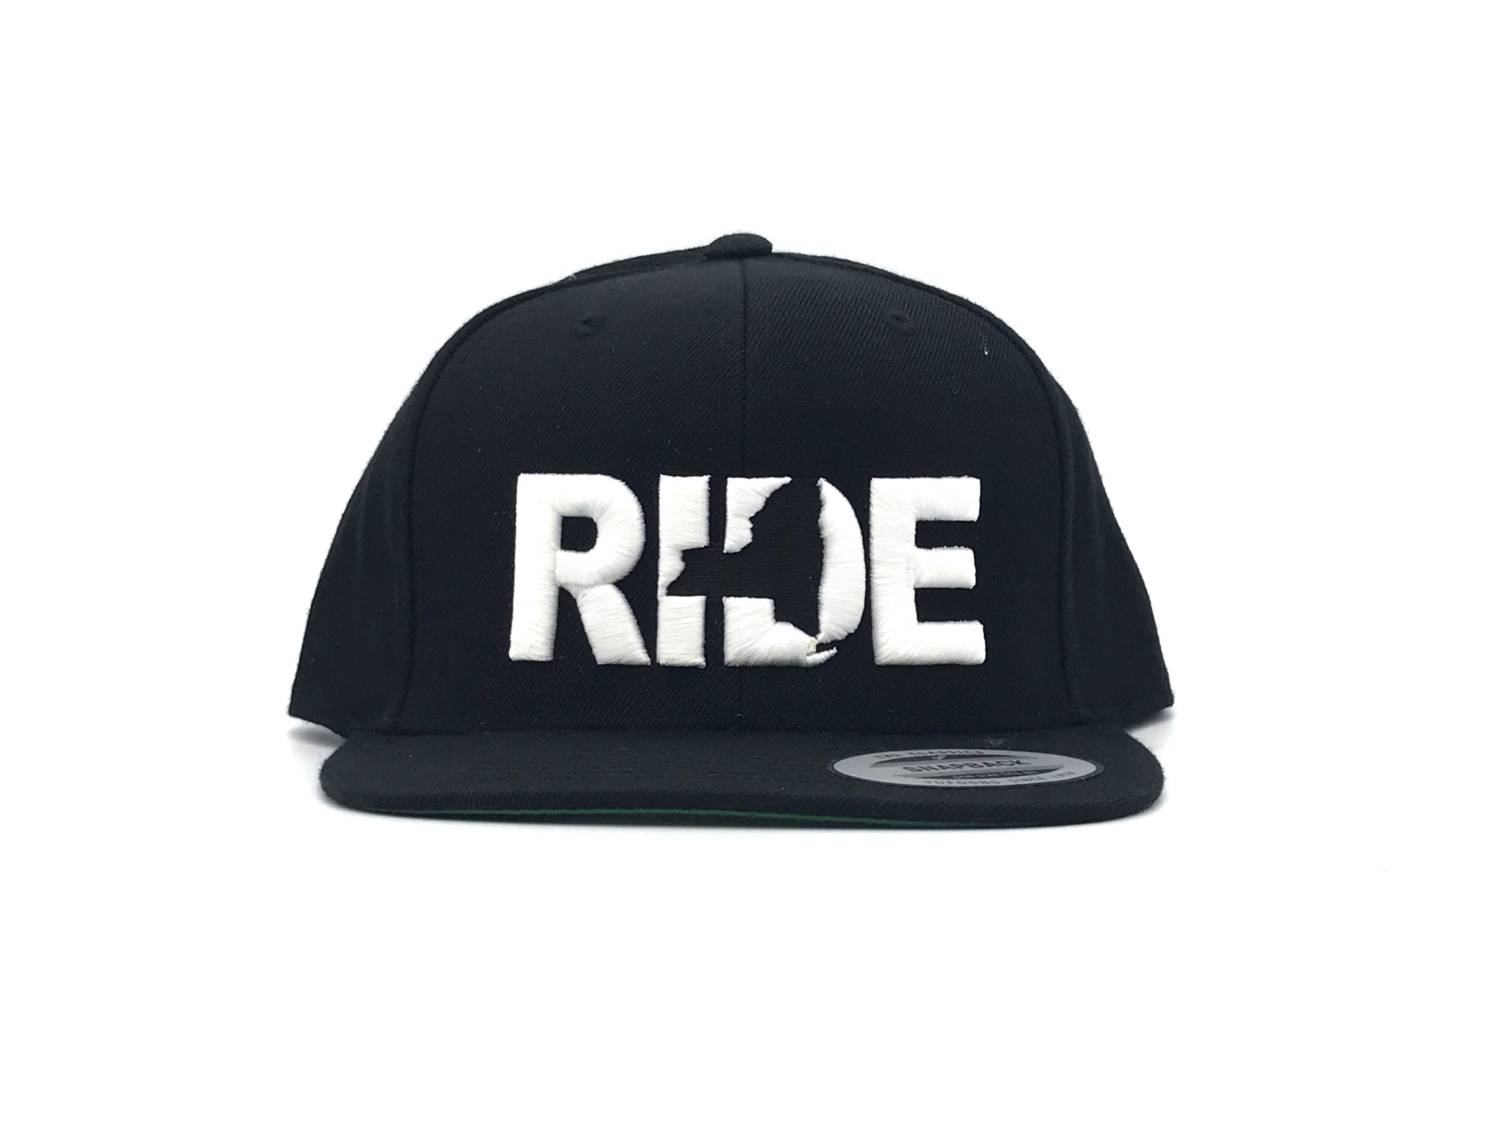 Ride New York Classic Embroidered  Snapback Flat Brim Hat Black/White